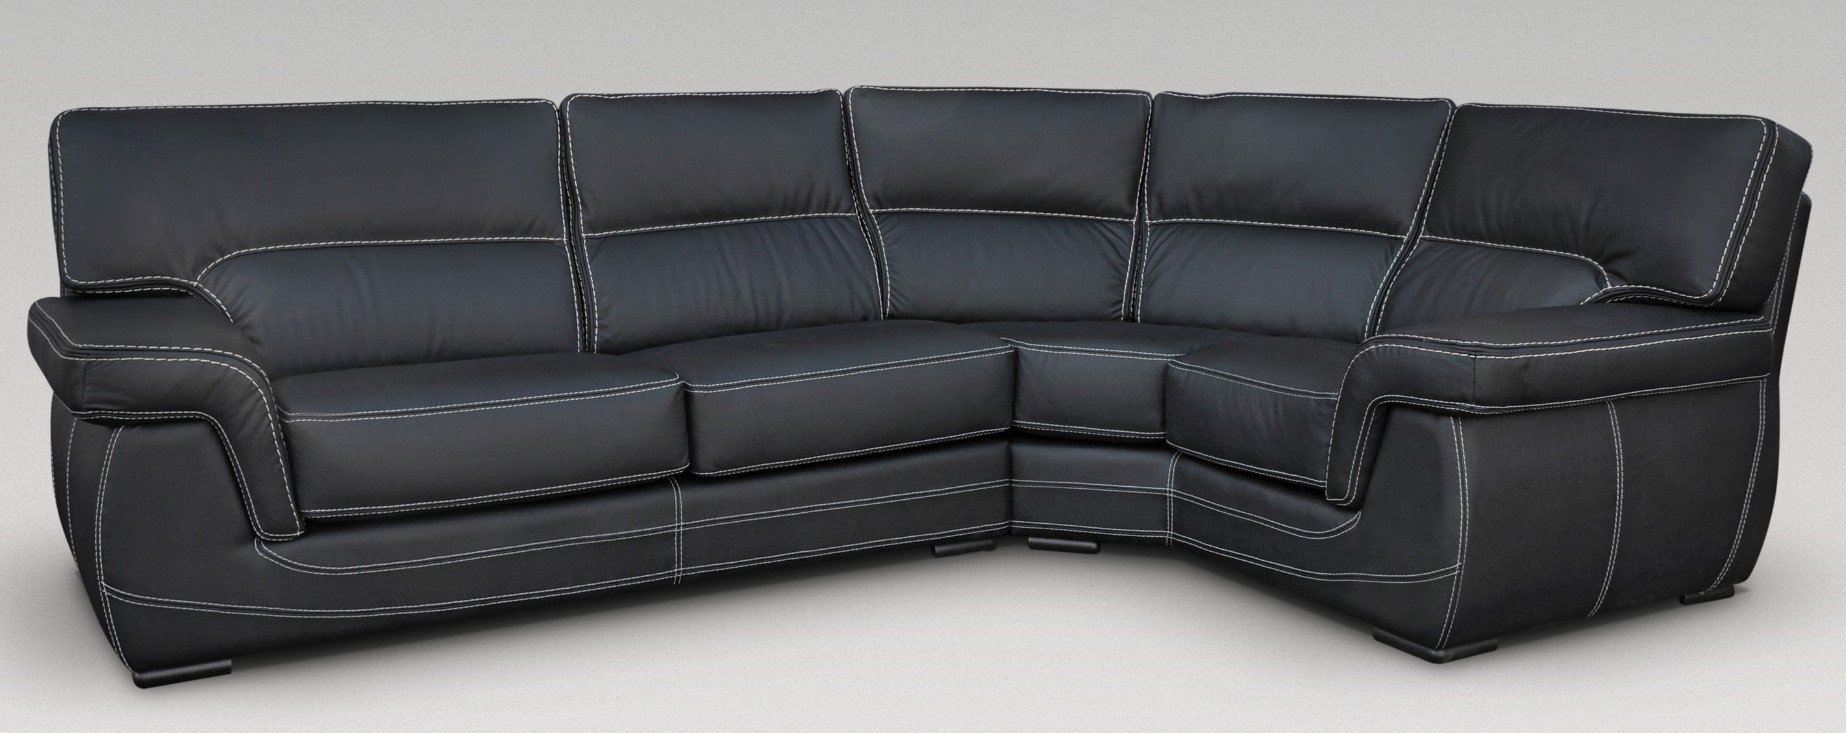 Babylon corner group italian leather sofa Italian leather sofa uk